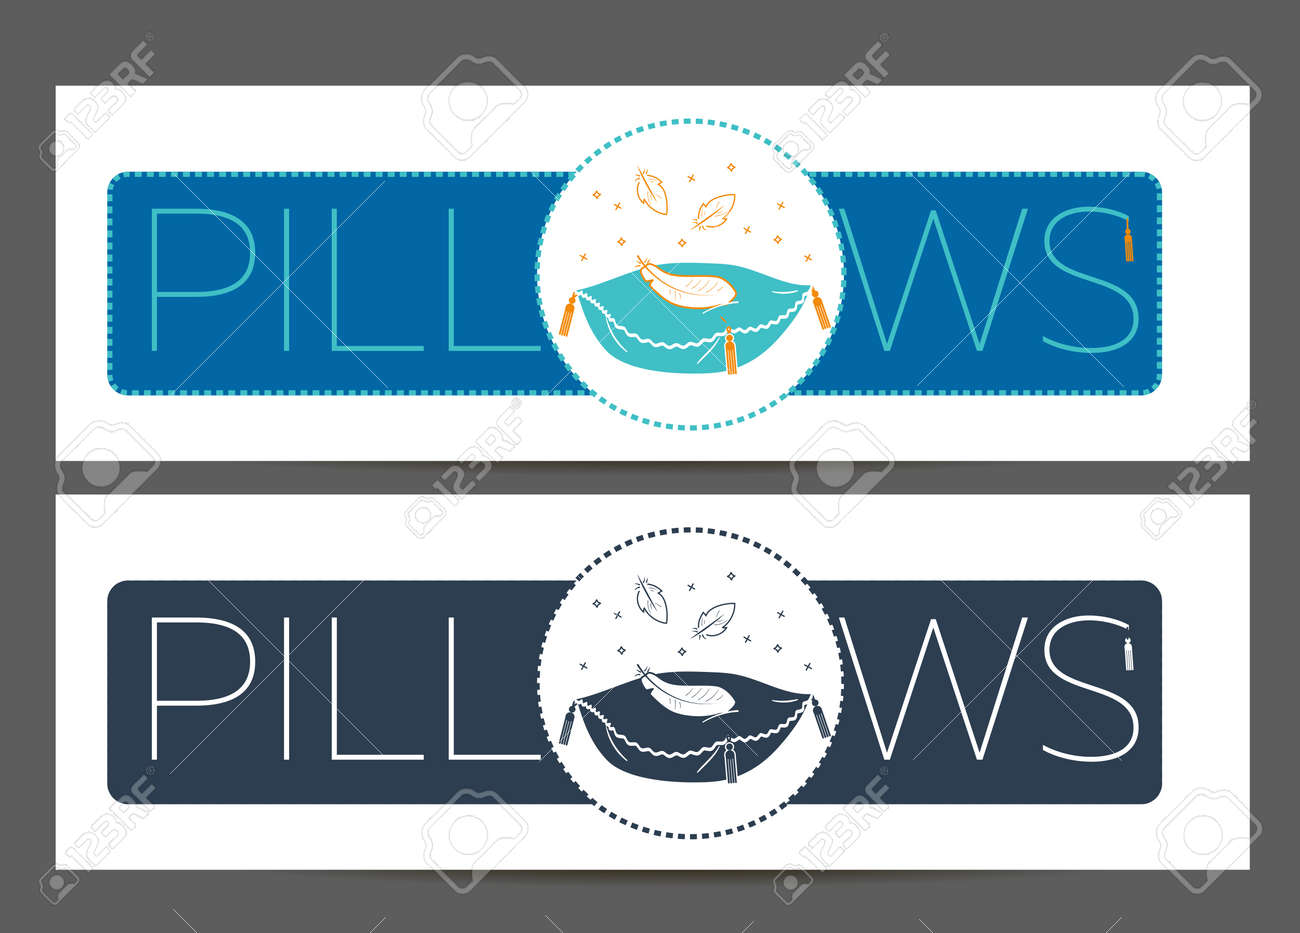 label banner for manufacturing cleaning pillows icon in the